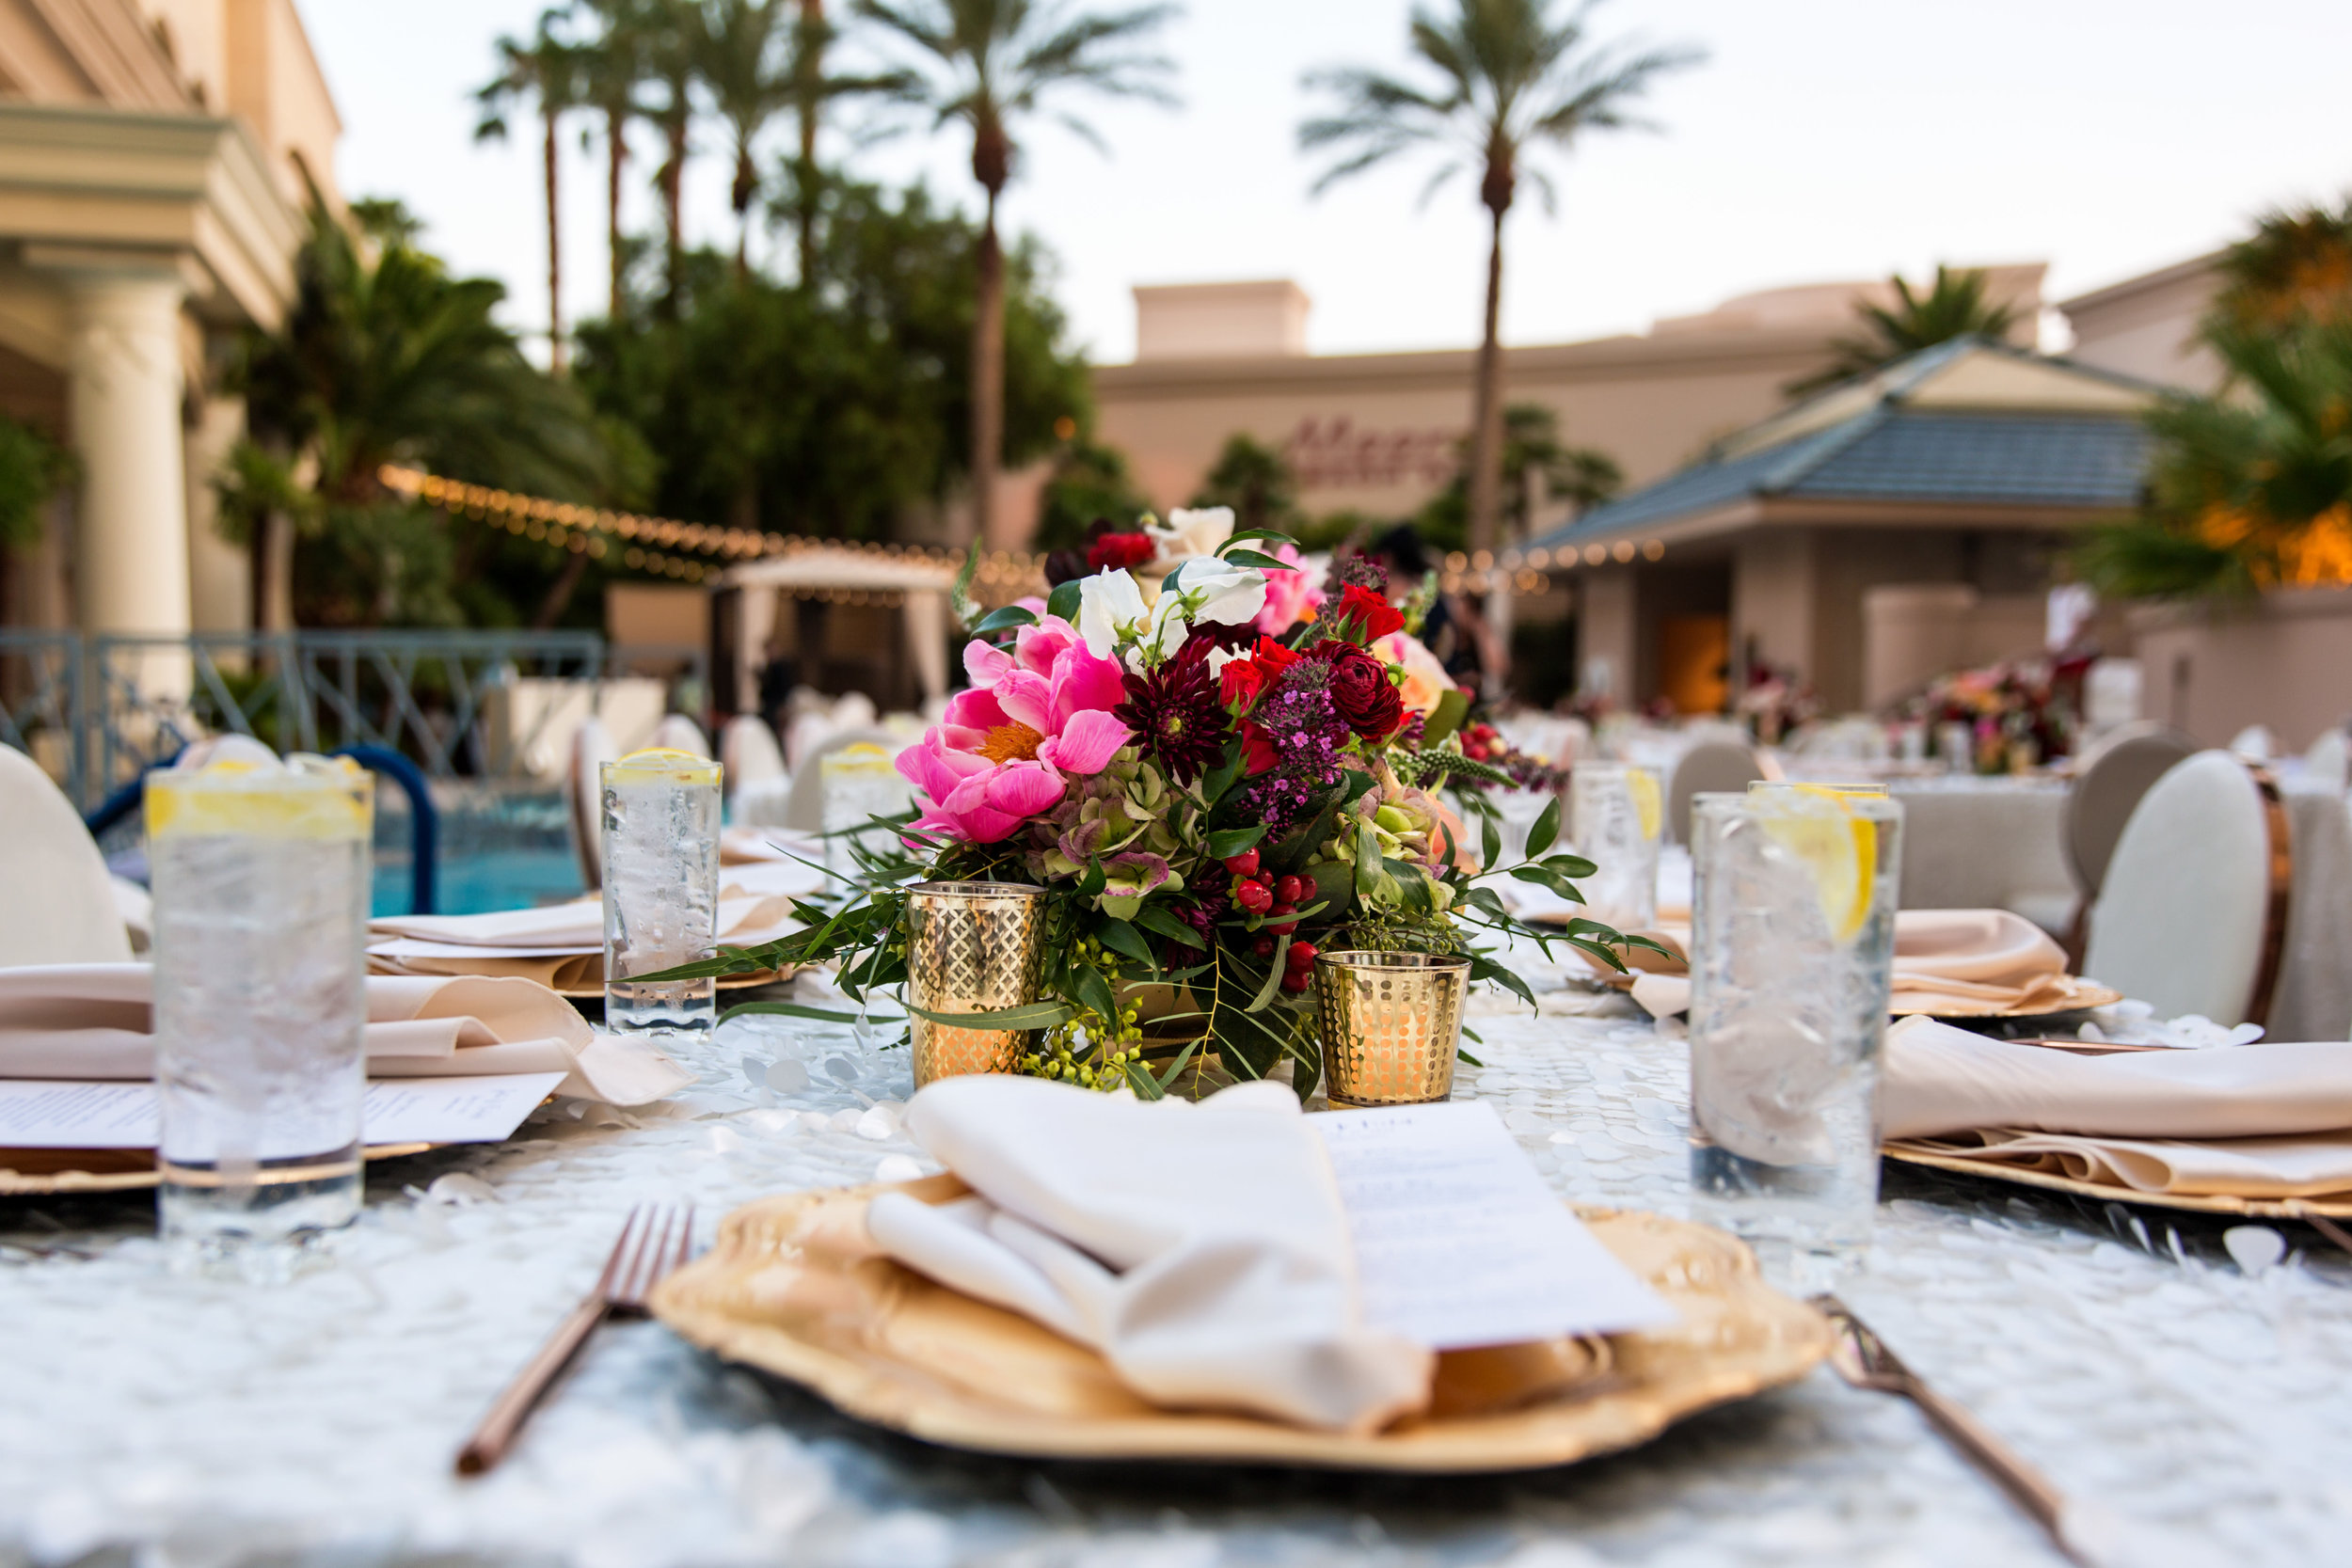 Jewel toned wedding centerpieces with gold accents.Wedding Planning by  Andrea Eppolito Events  · Photography by  Shandro Photo   · Wedding Venue  Four Seasons Las Vegas  · Floral and Decor by  Destination by Design  · Cake by  Four Seasons Las Vegas  · Chandeliers and Lighting by  LED Unplugged  · Dress by  Berta